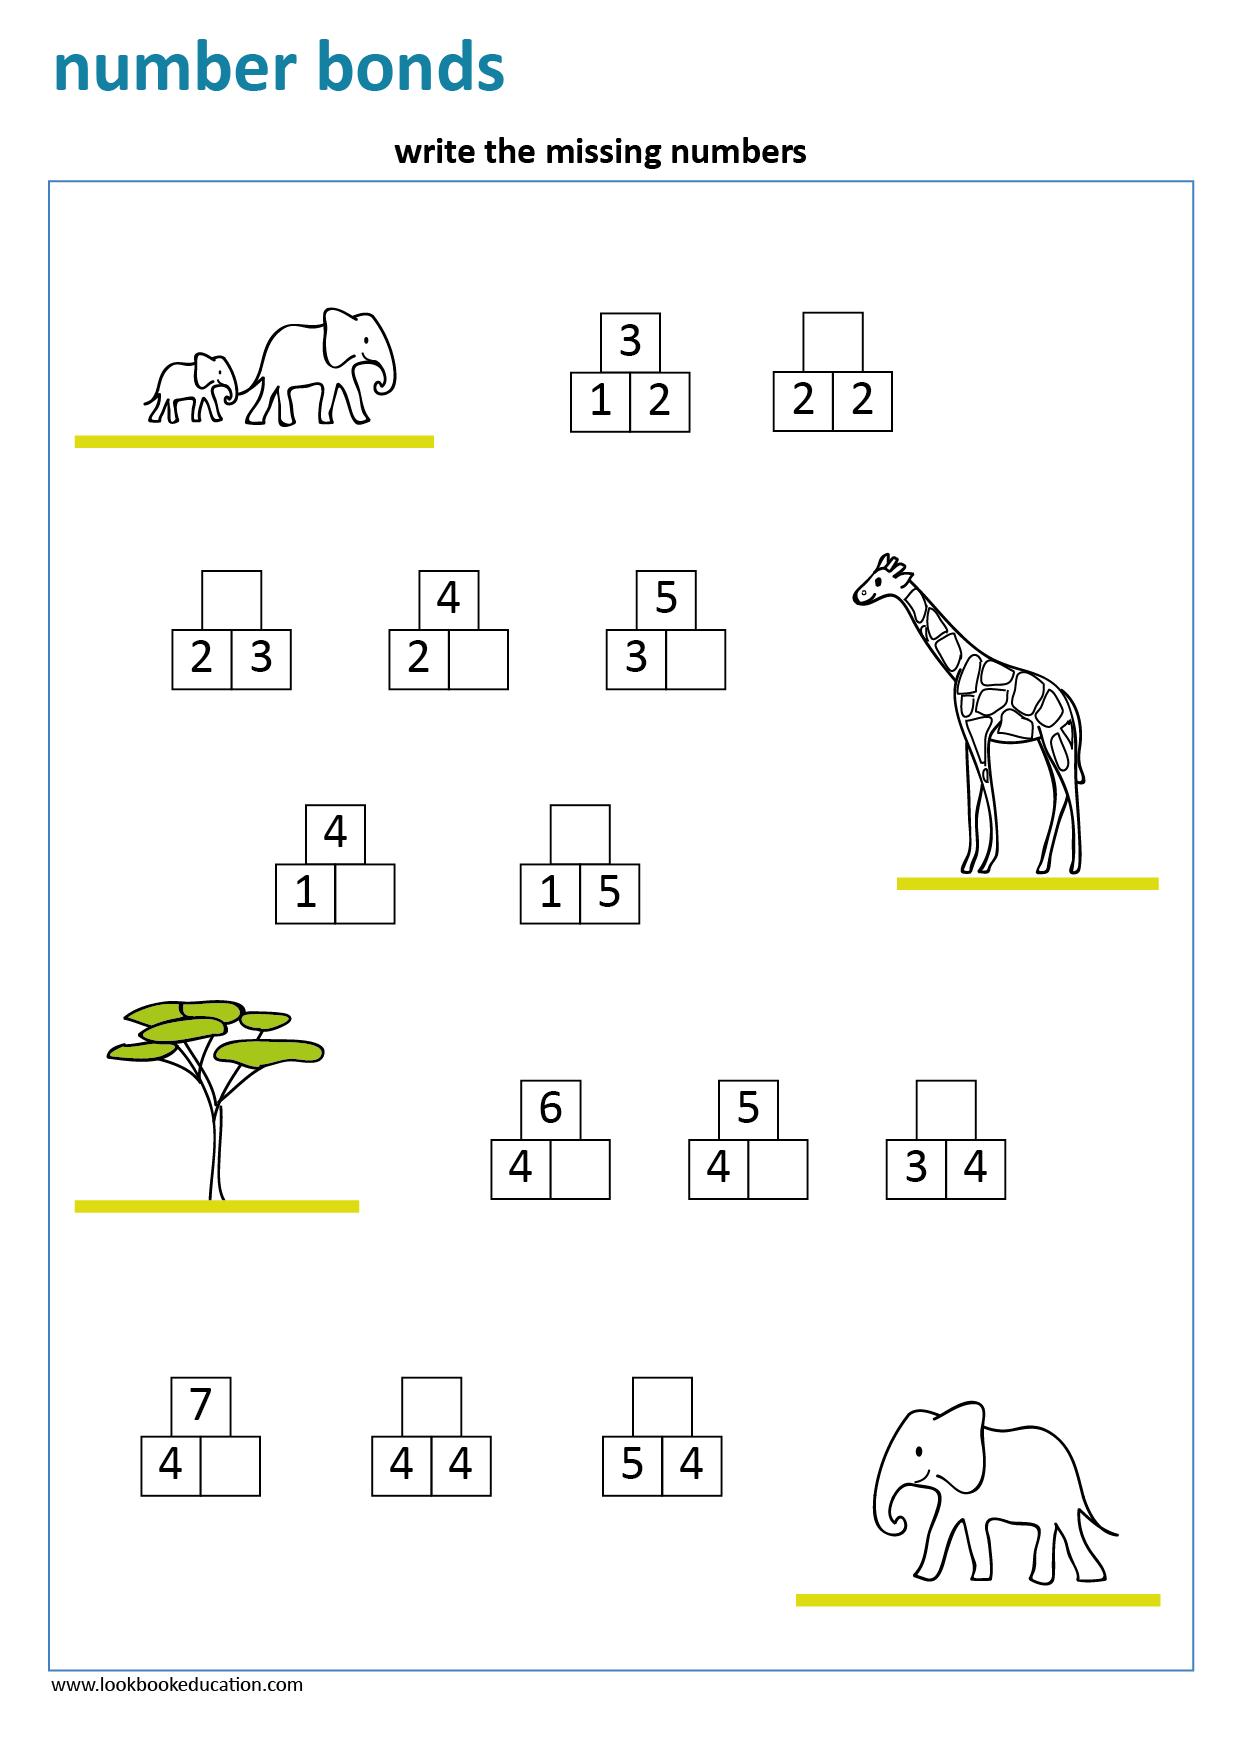 Worksheet Number Bonds Elephants